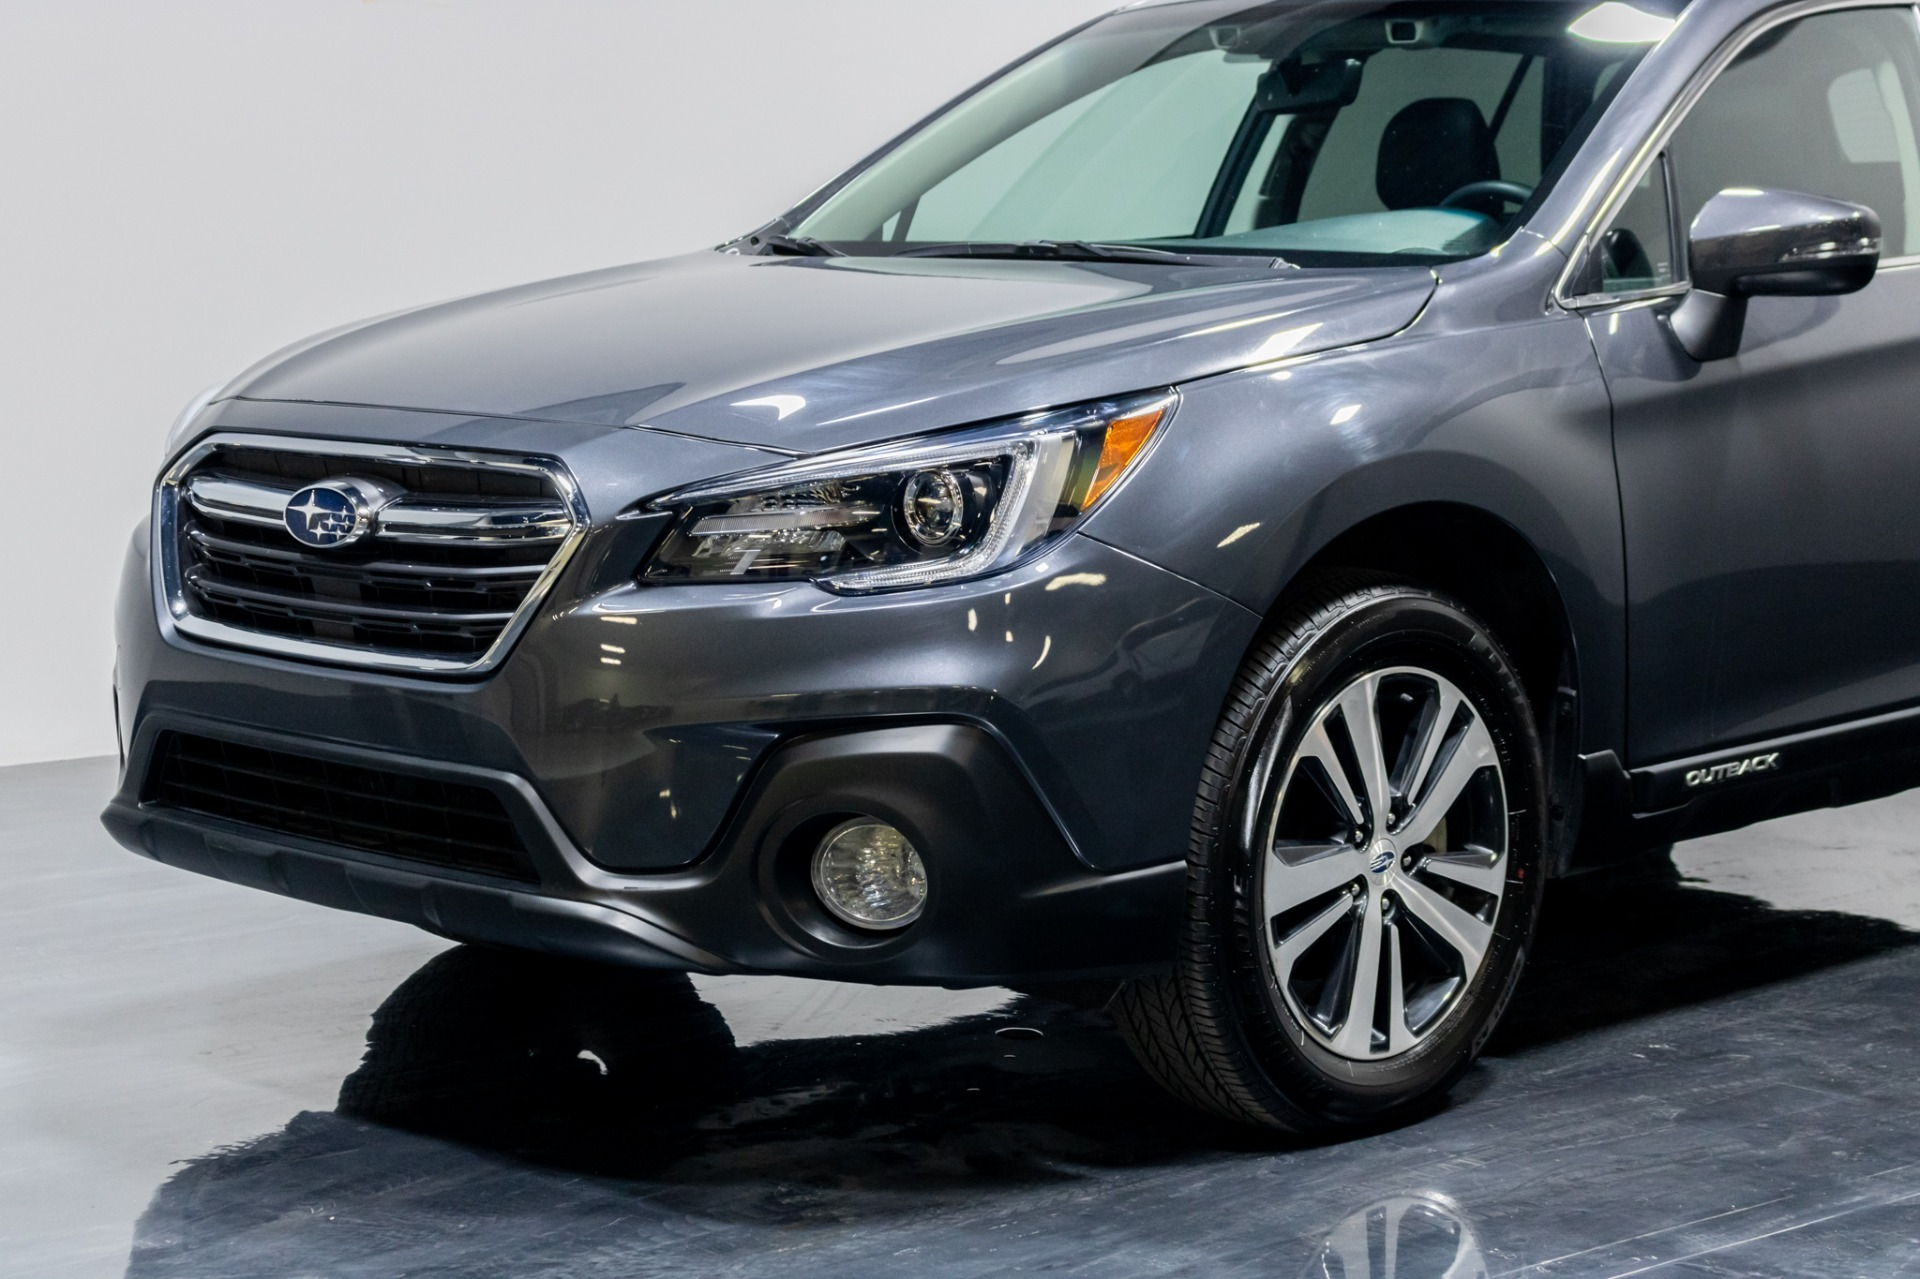 Used 2019 Subaru Outback 2.5i Limited Wagon 4D for sale Sold at Perfect Auto Collection in Akron OH 44310 3